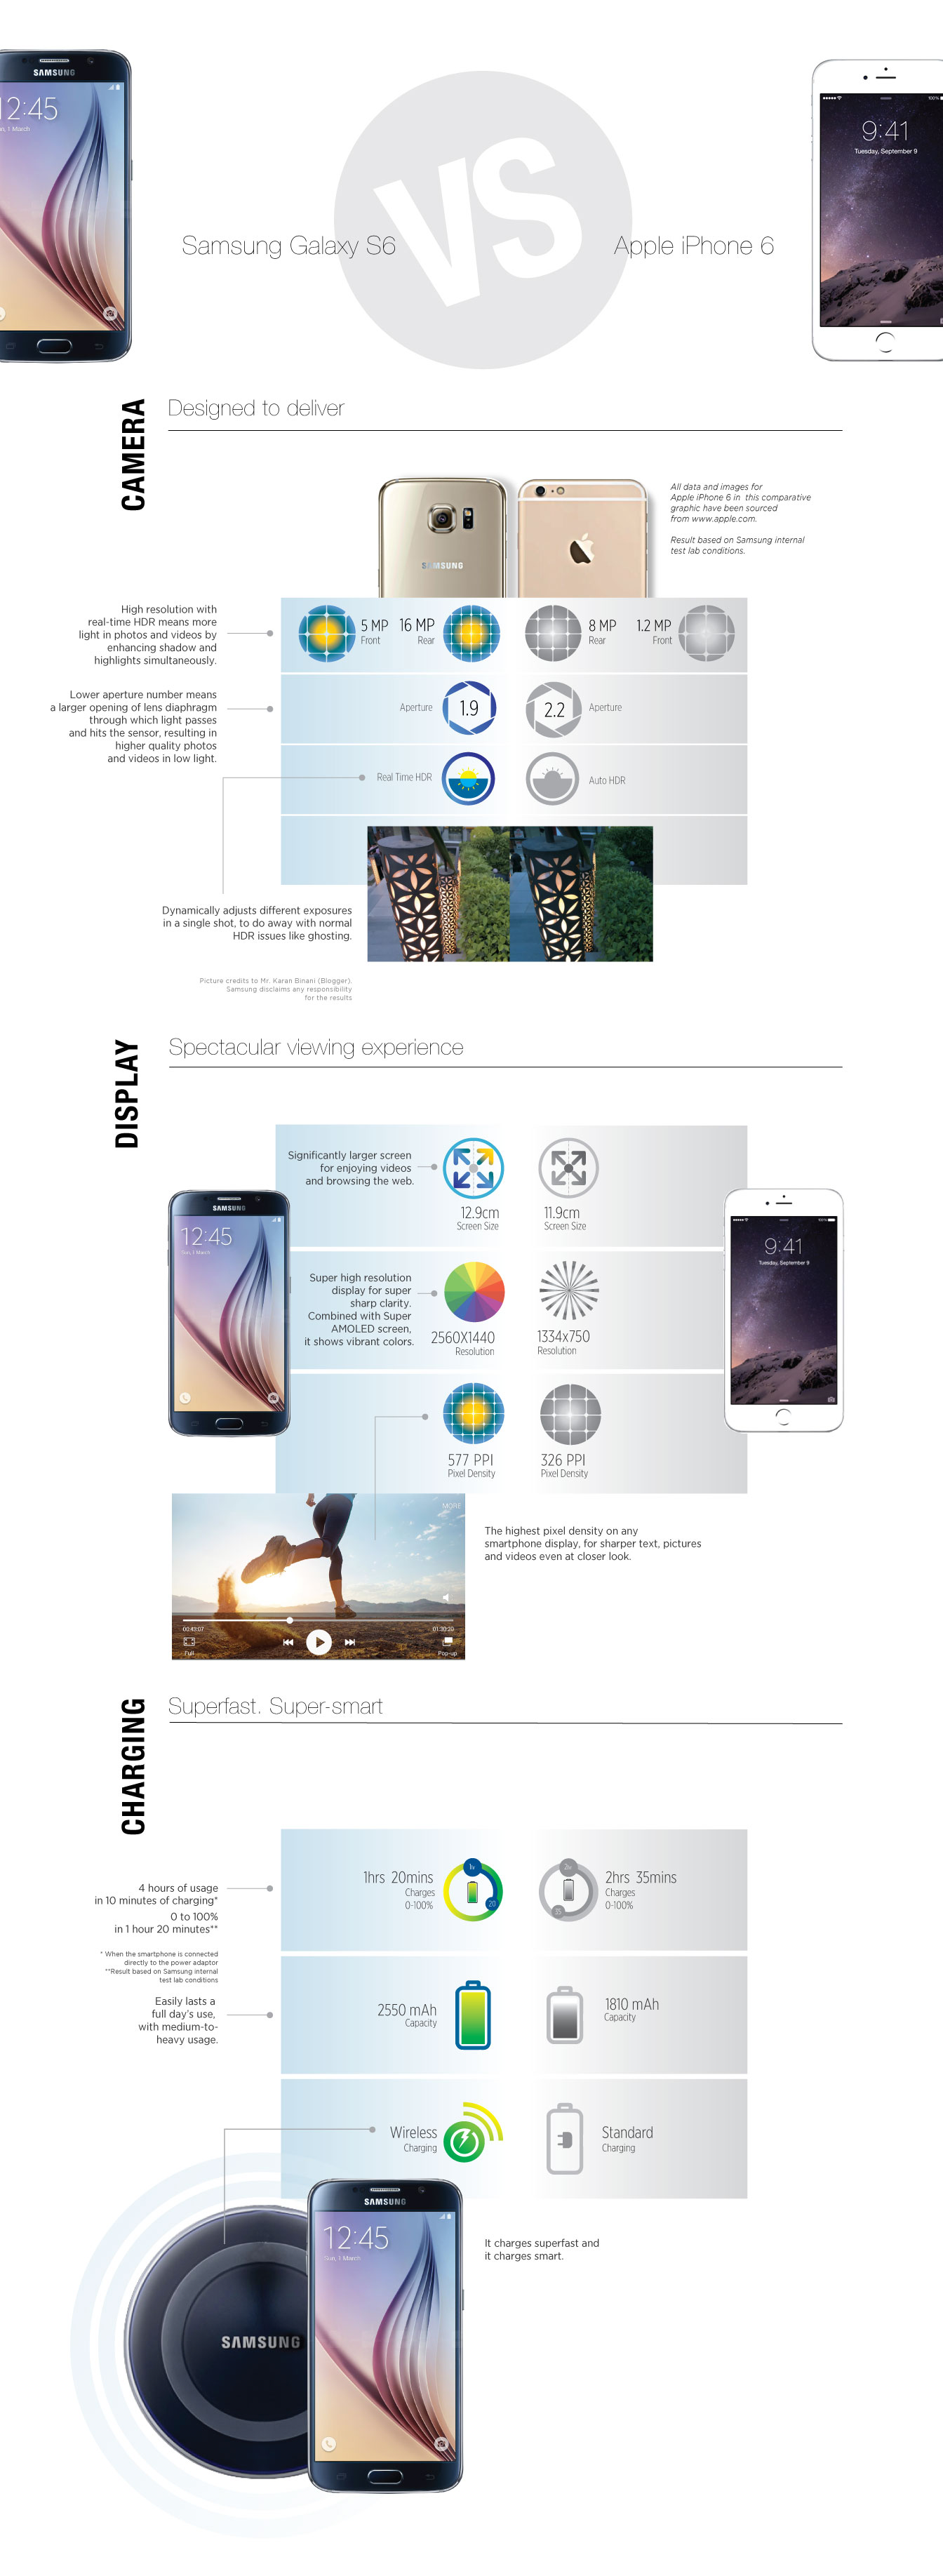 Galaxy S6 Vs iPhone6 Infographic